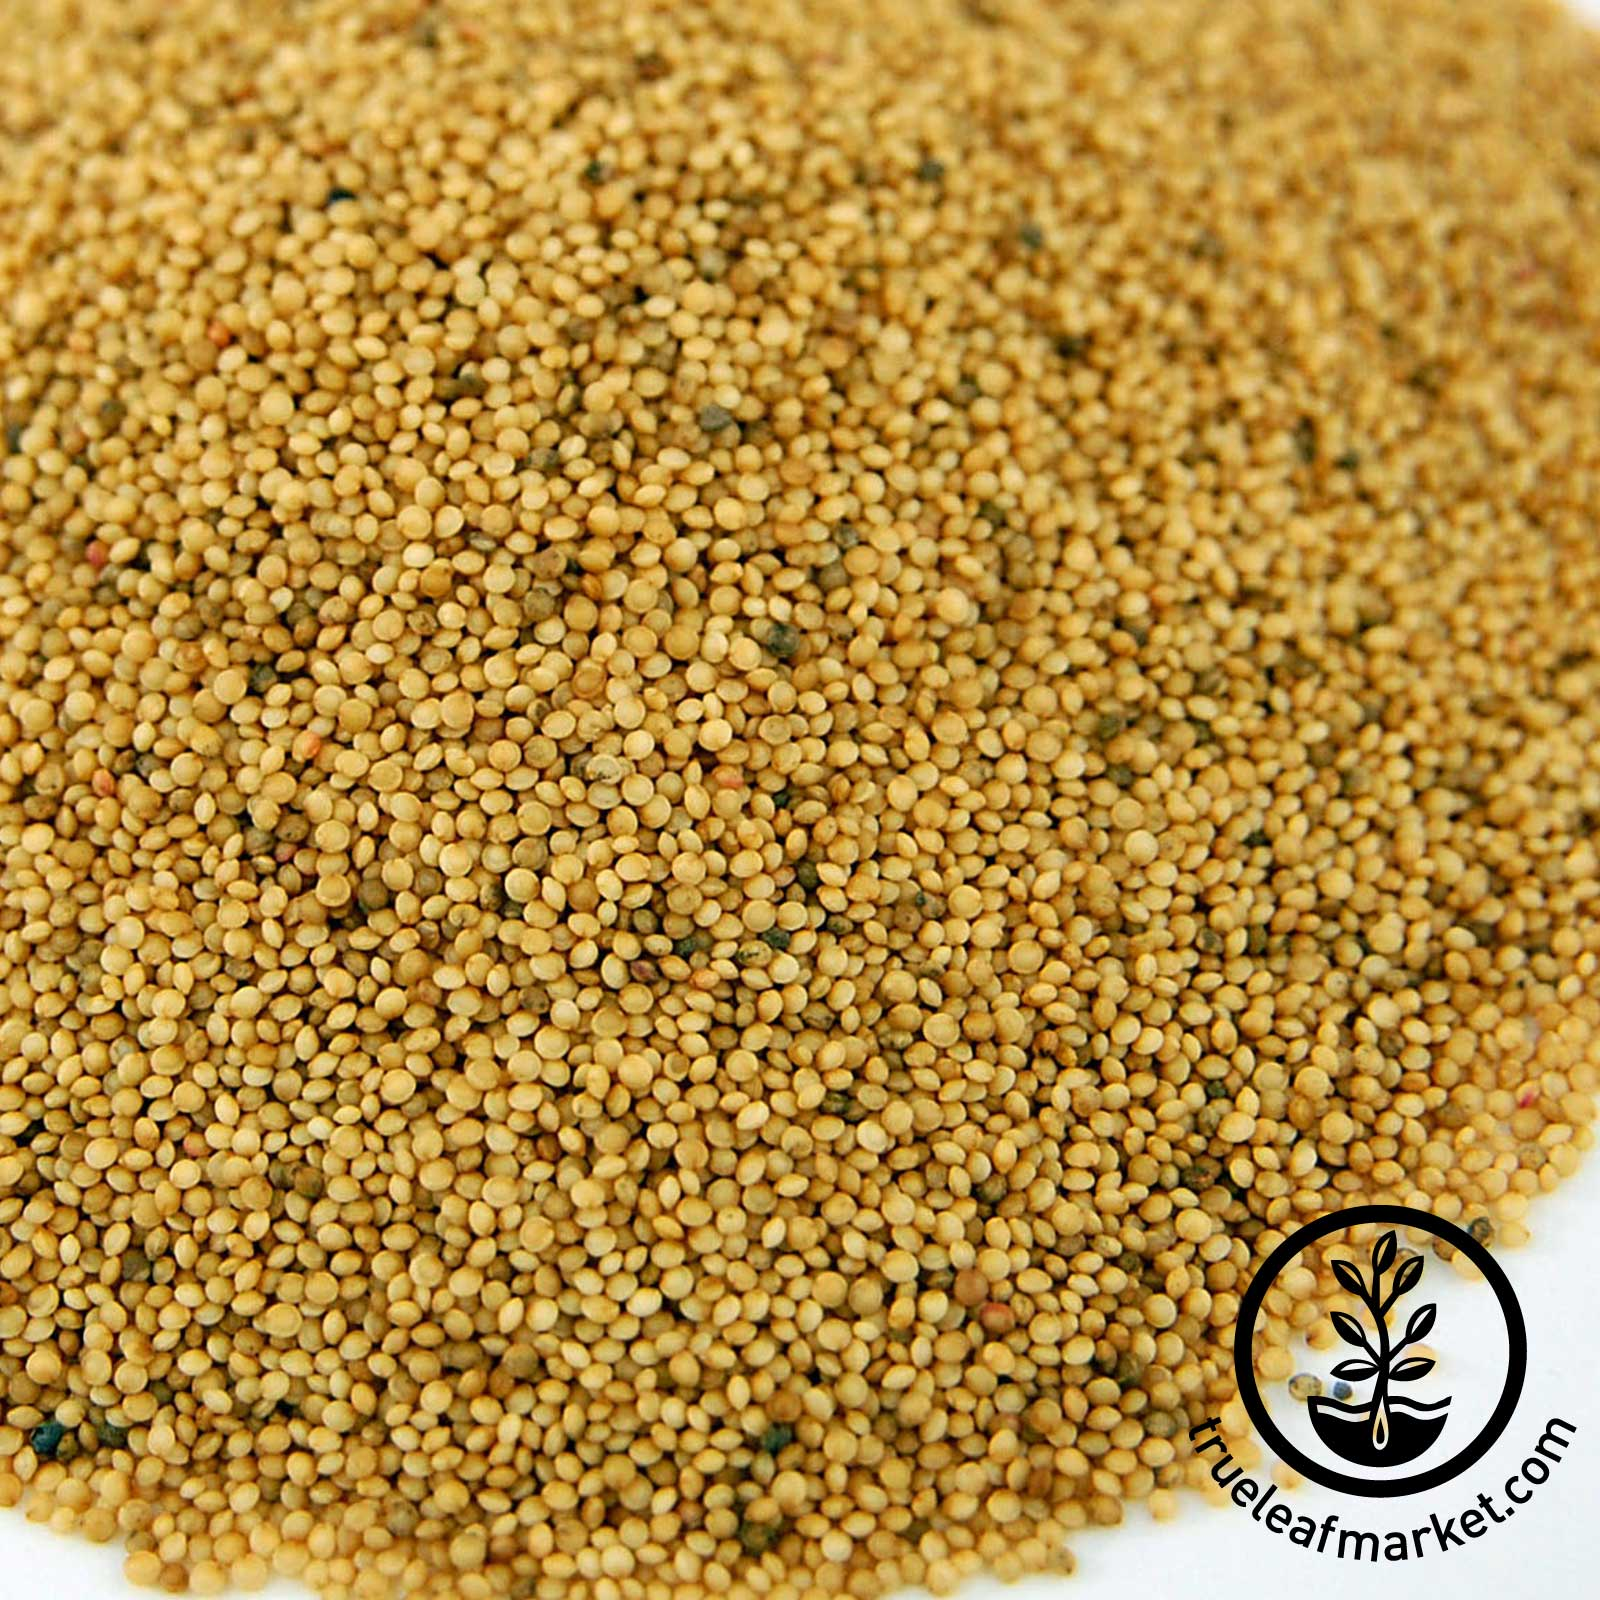 Organic Amaranth Grain - Close Up